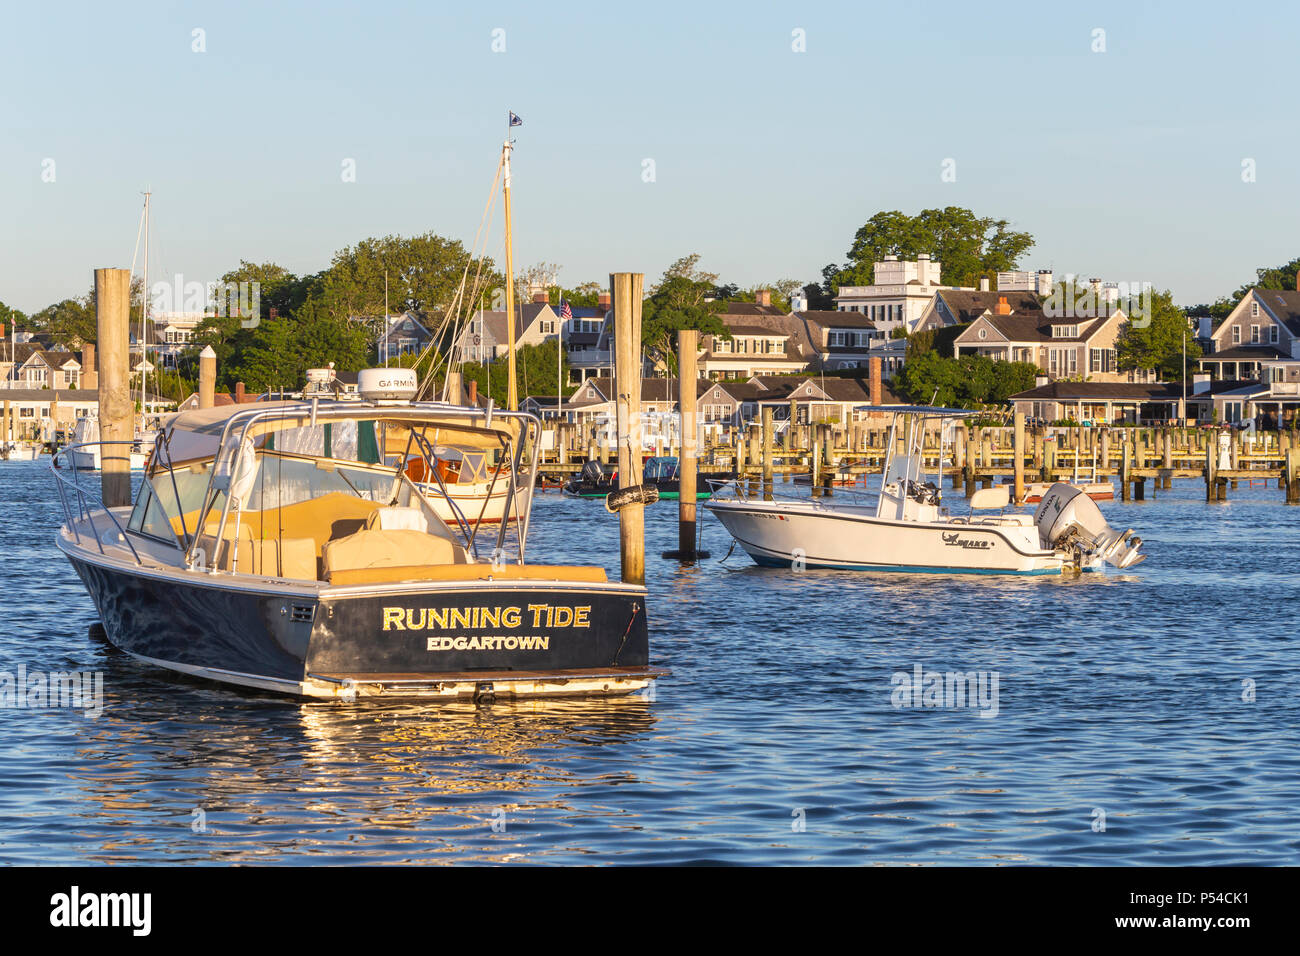 Boats moored and docked in the harbor, overlooked by stately sea captains' homes in Edgartown, Massachusetts on Martha's Vineyard. - Stock Image